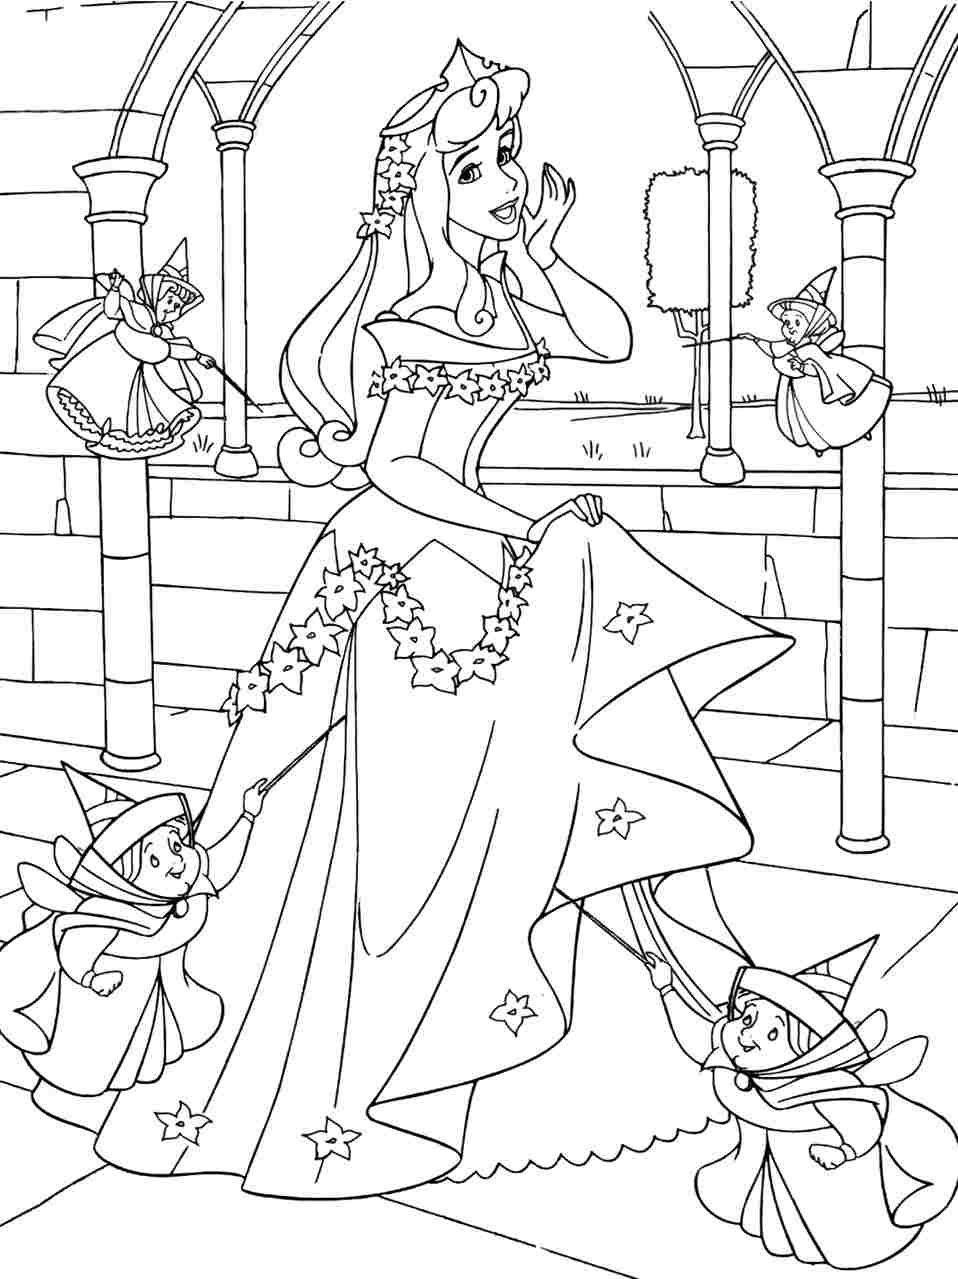 colering pages free printable sleeping beauty coloring pages for kids pages colering